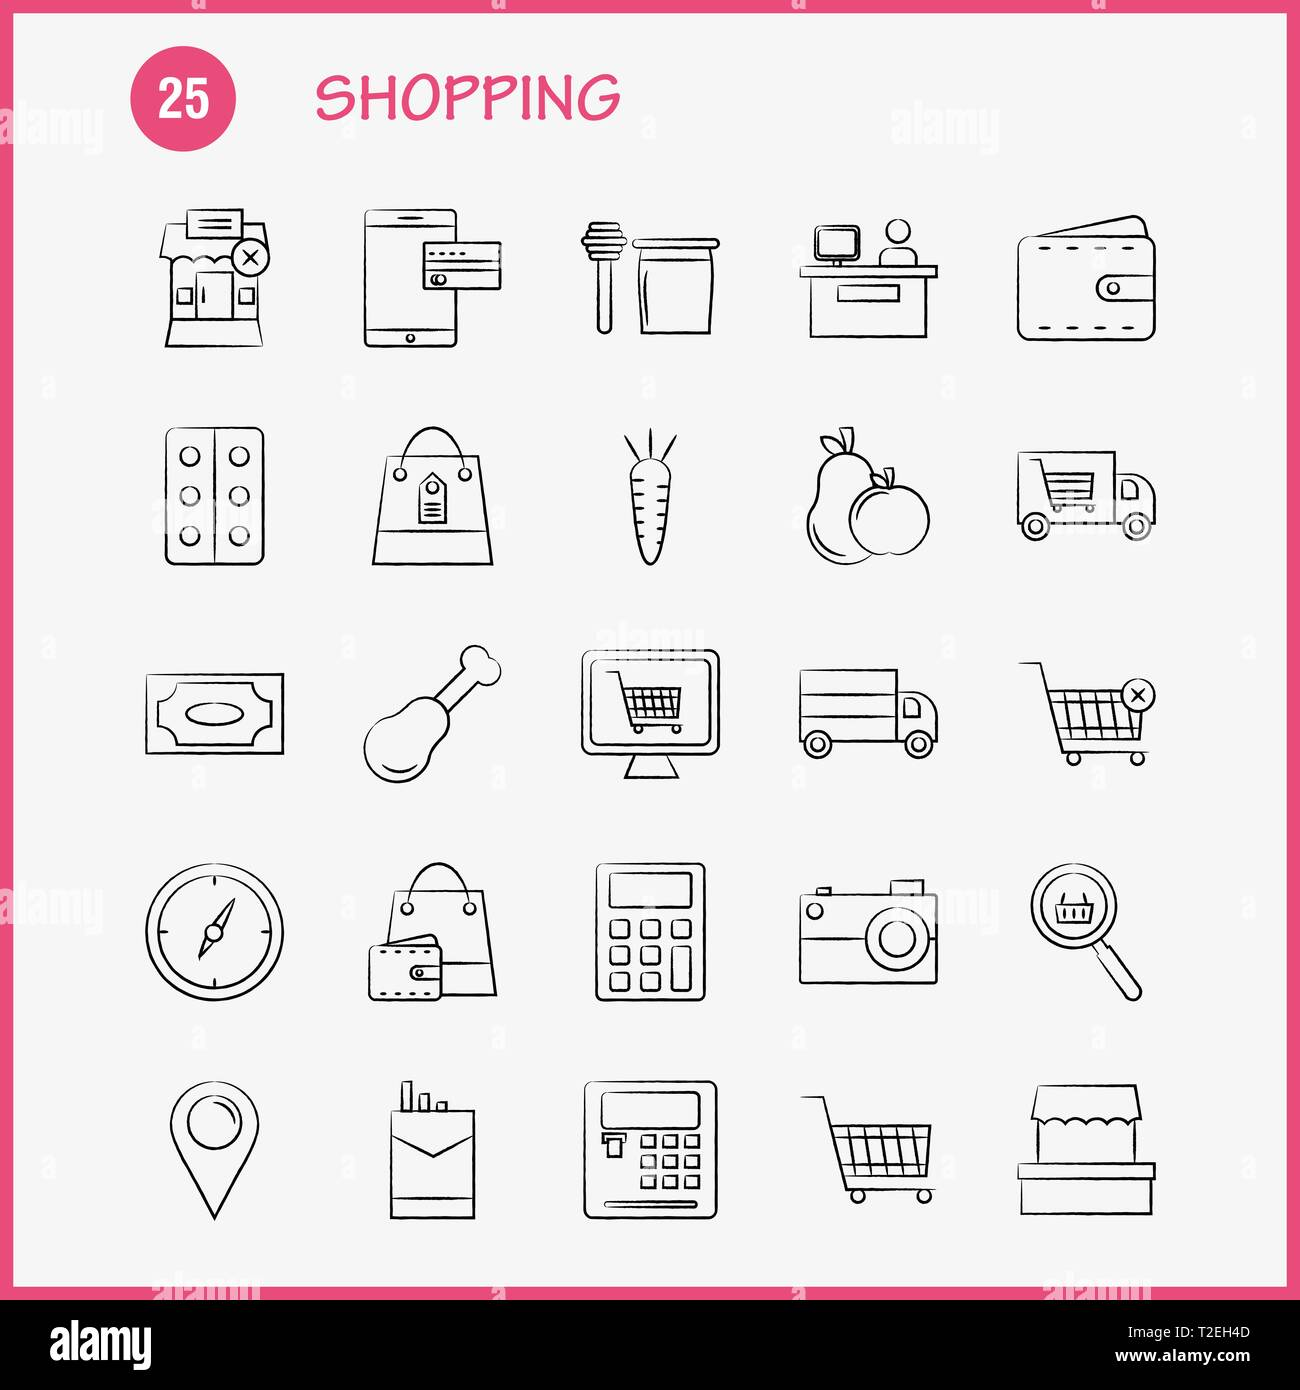 Shopping Hand Drawn Icon for Web, Print and Mobile UX/UI Kit. Such as: Building, Mall, Shopping, Shopping Mall, Shopping, Cart, Commerce, Pictogram Pa - Stock Vector